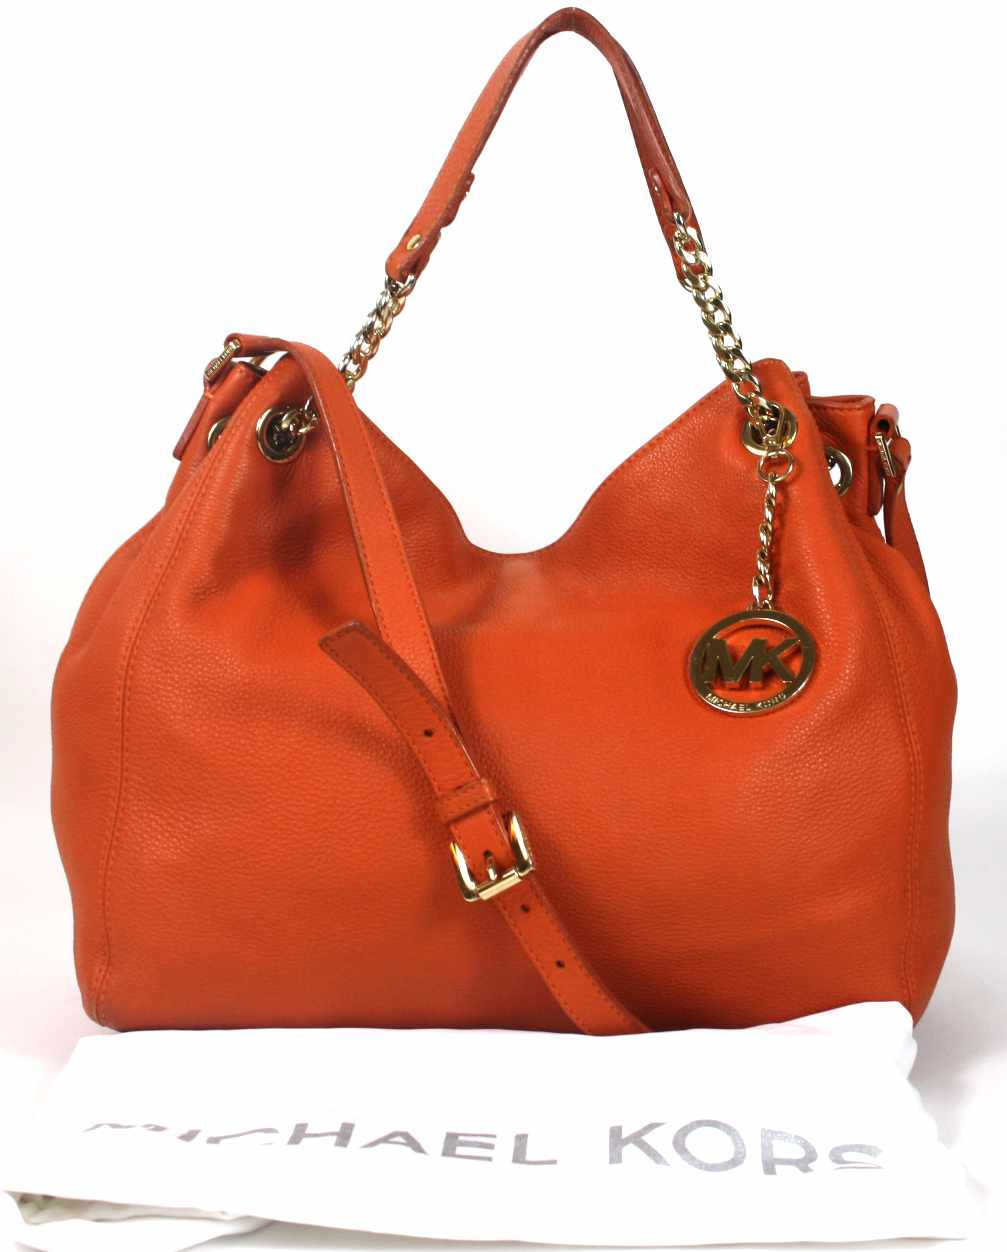 Jet Set Chain Leather Tote